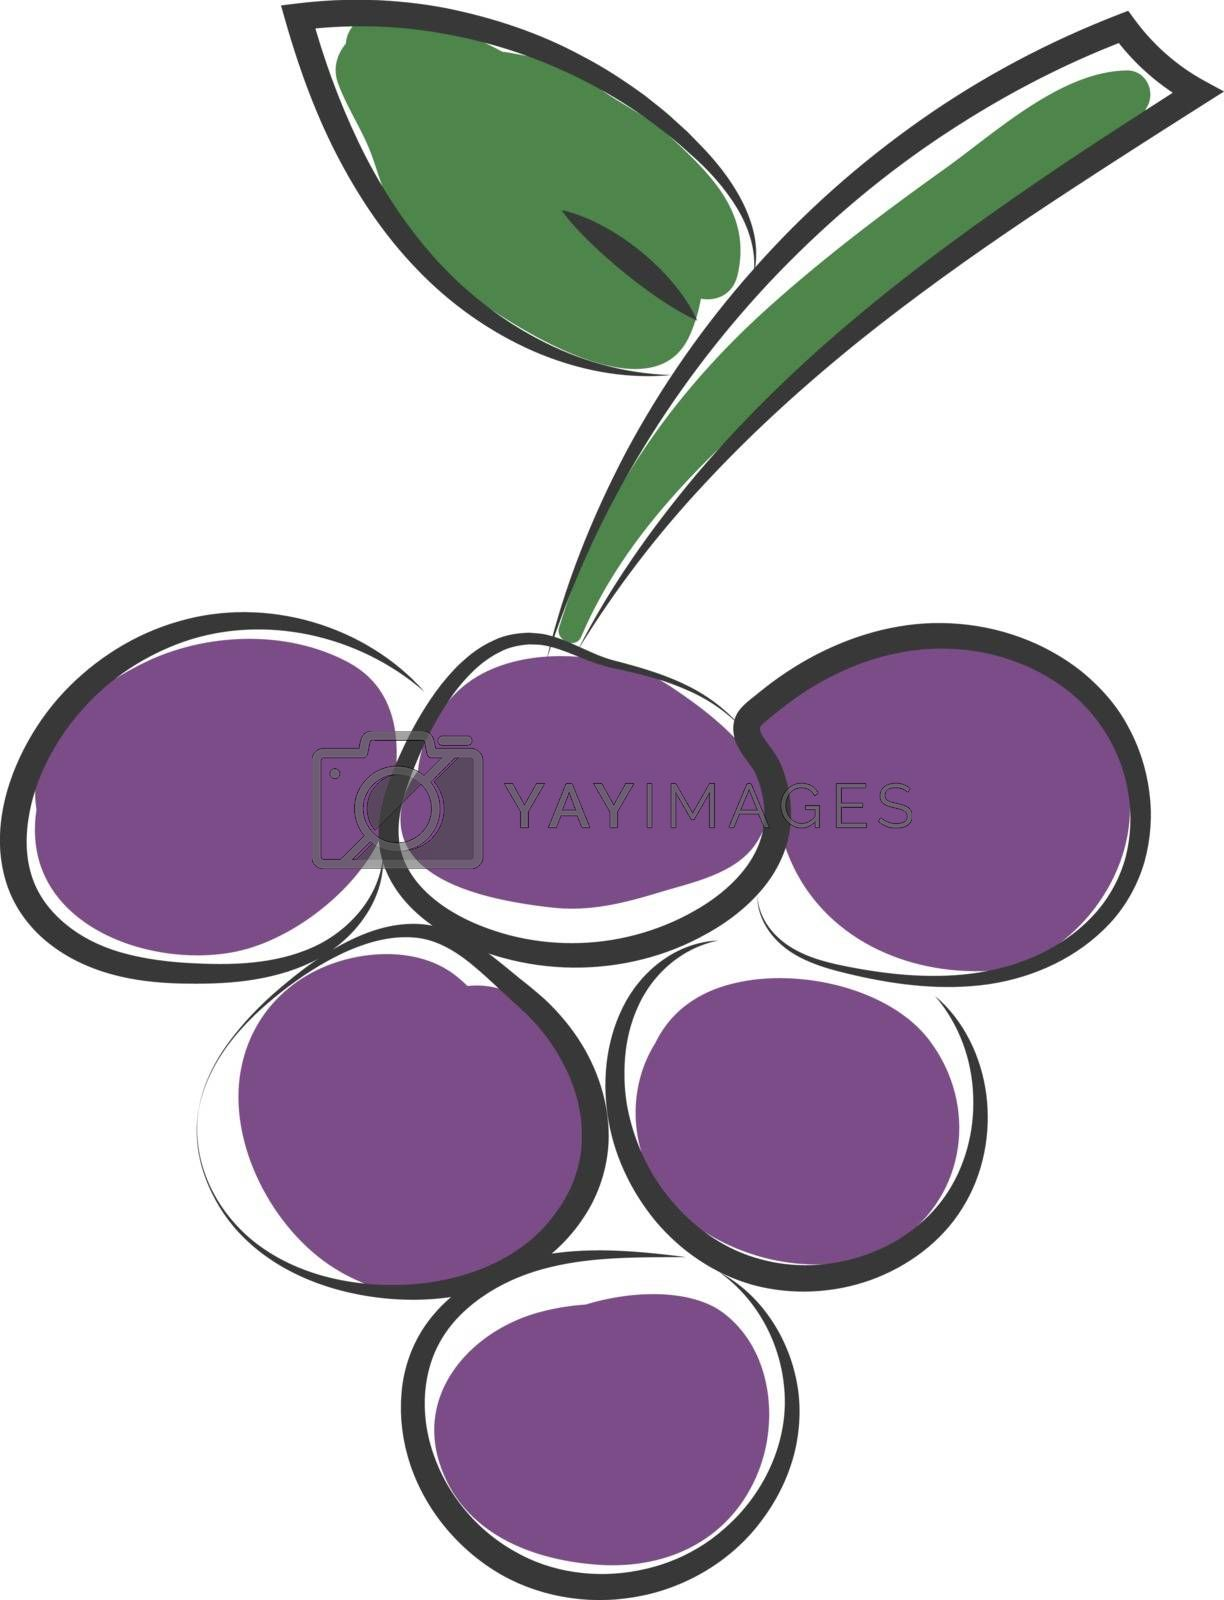 Royalty free image of Clipart of a bunch of round-shaped purple grapes vector or color by Morphart